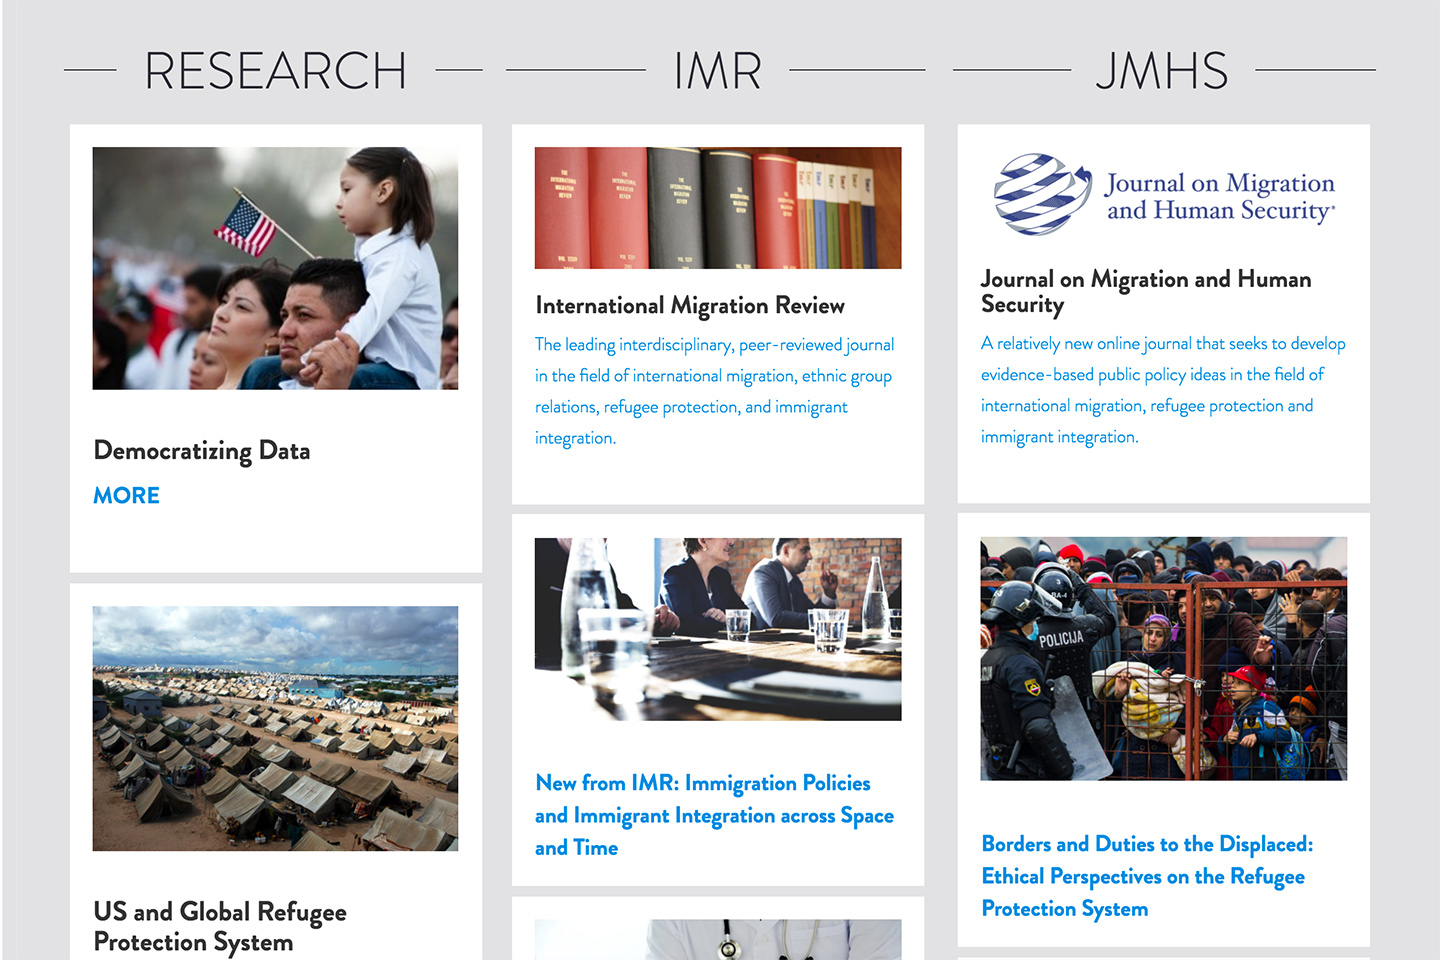 CMSNY: Center for Migration Studies: Center for Migration Studies - Featured Modules